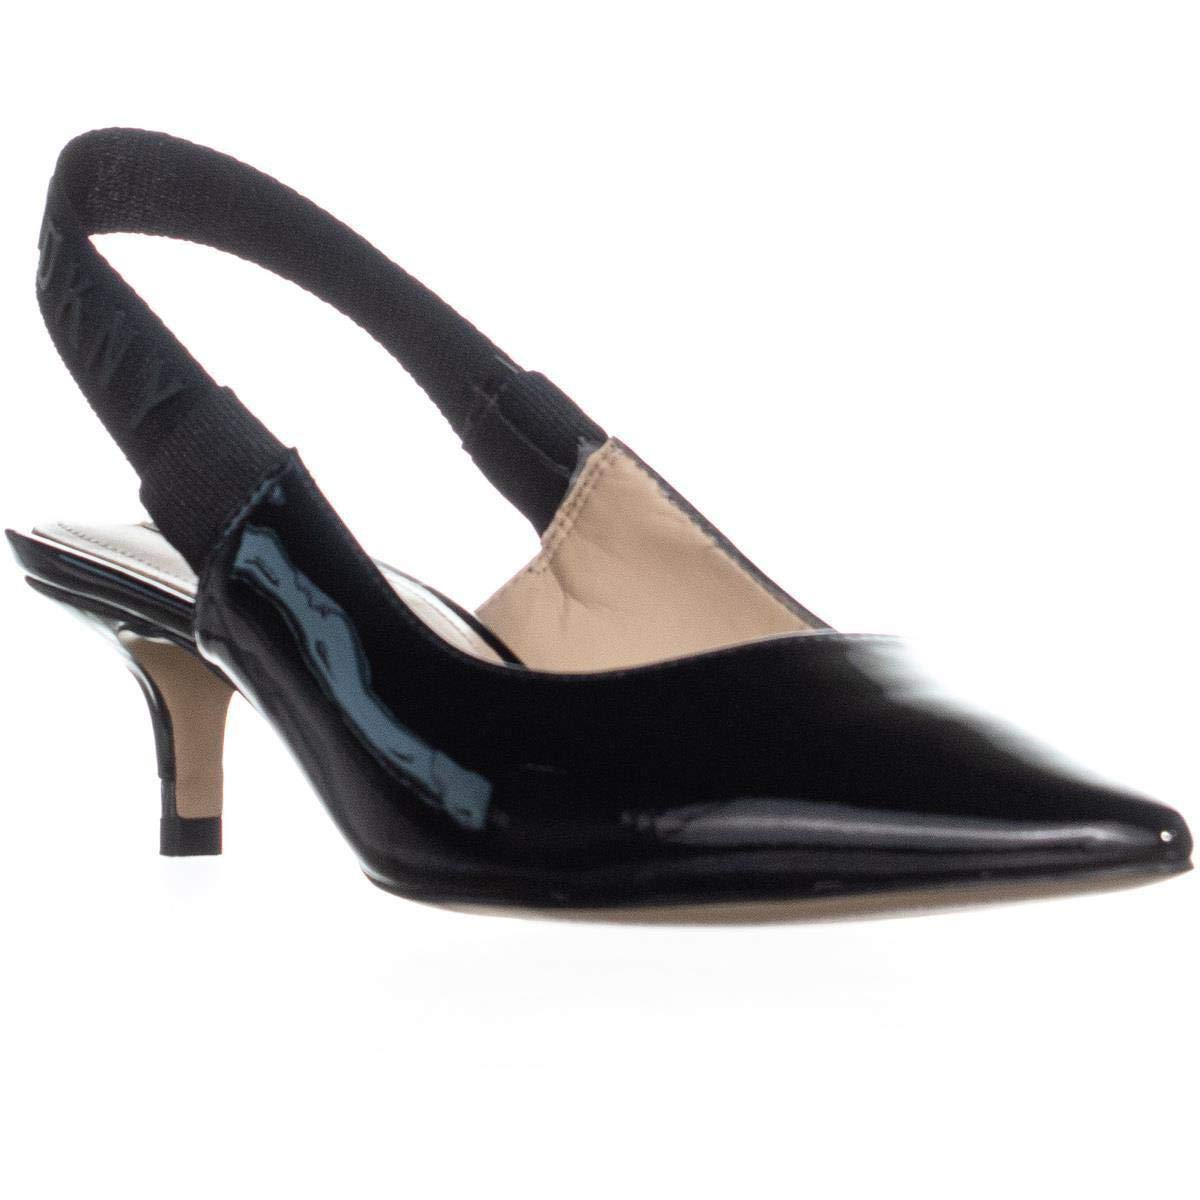 DKNY Womens Dorris Leather Pointed Toe Slingback Classic Pumps